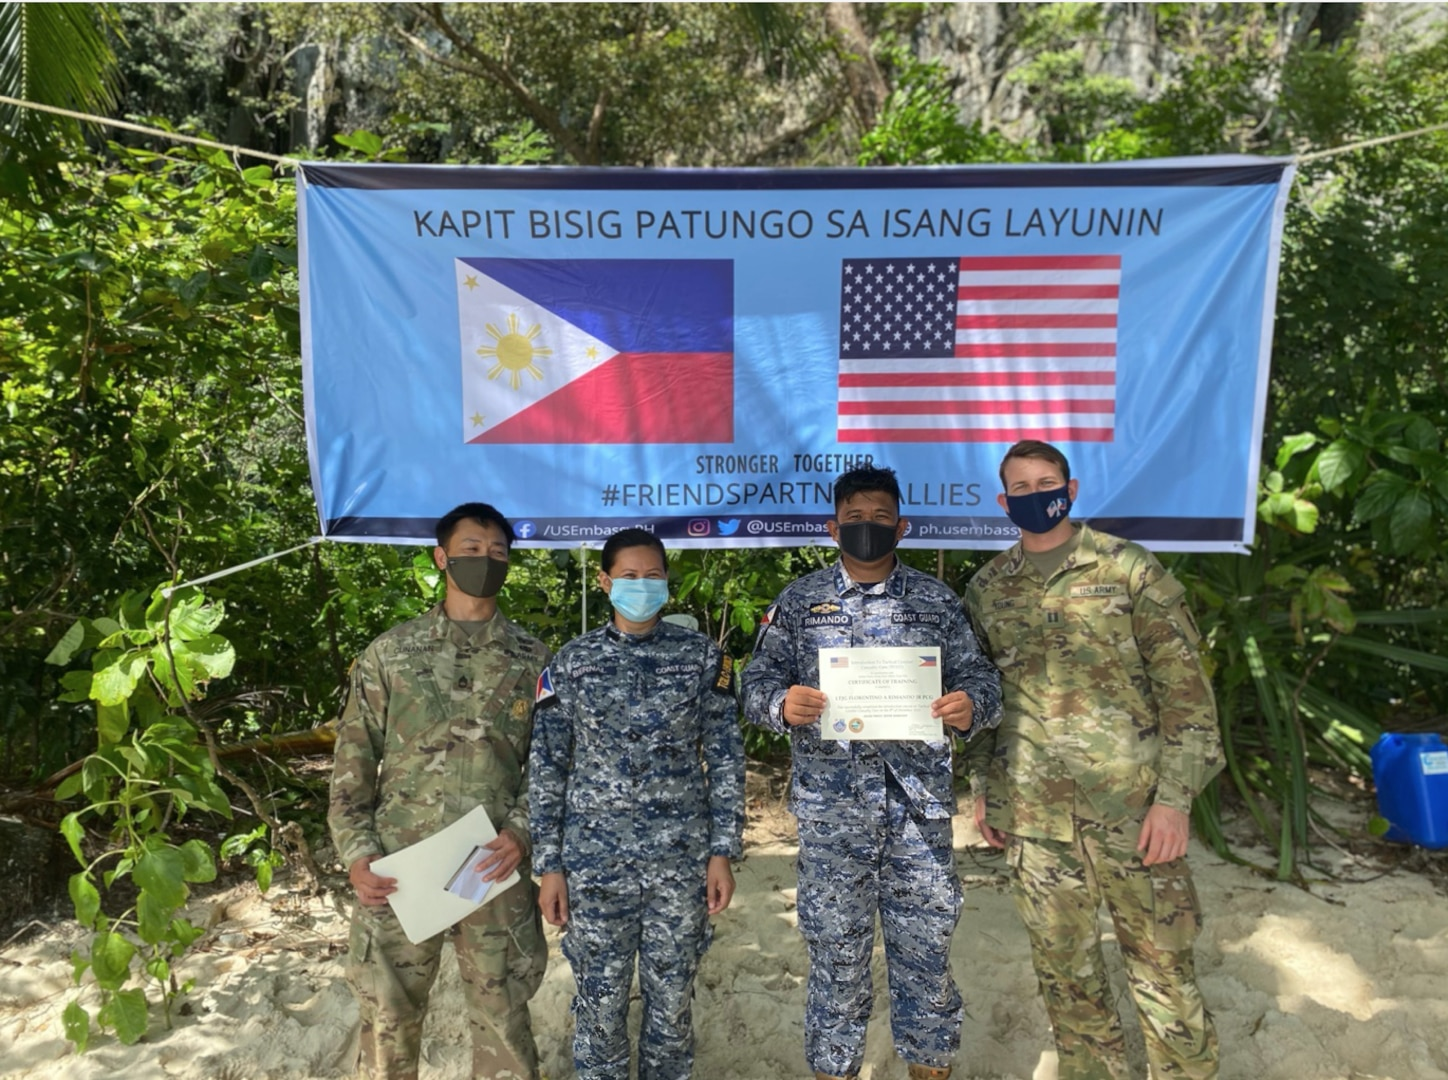 U.S. and Philippine Military Personnel Partner for First Responder Training and Medical Assistance Provision in Palawan